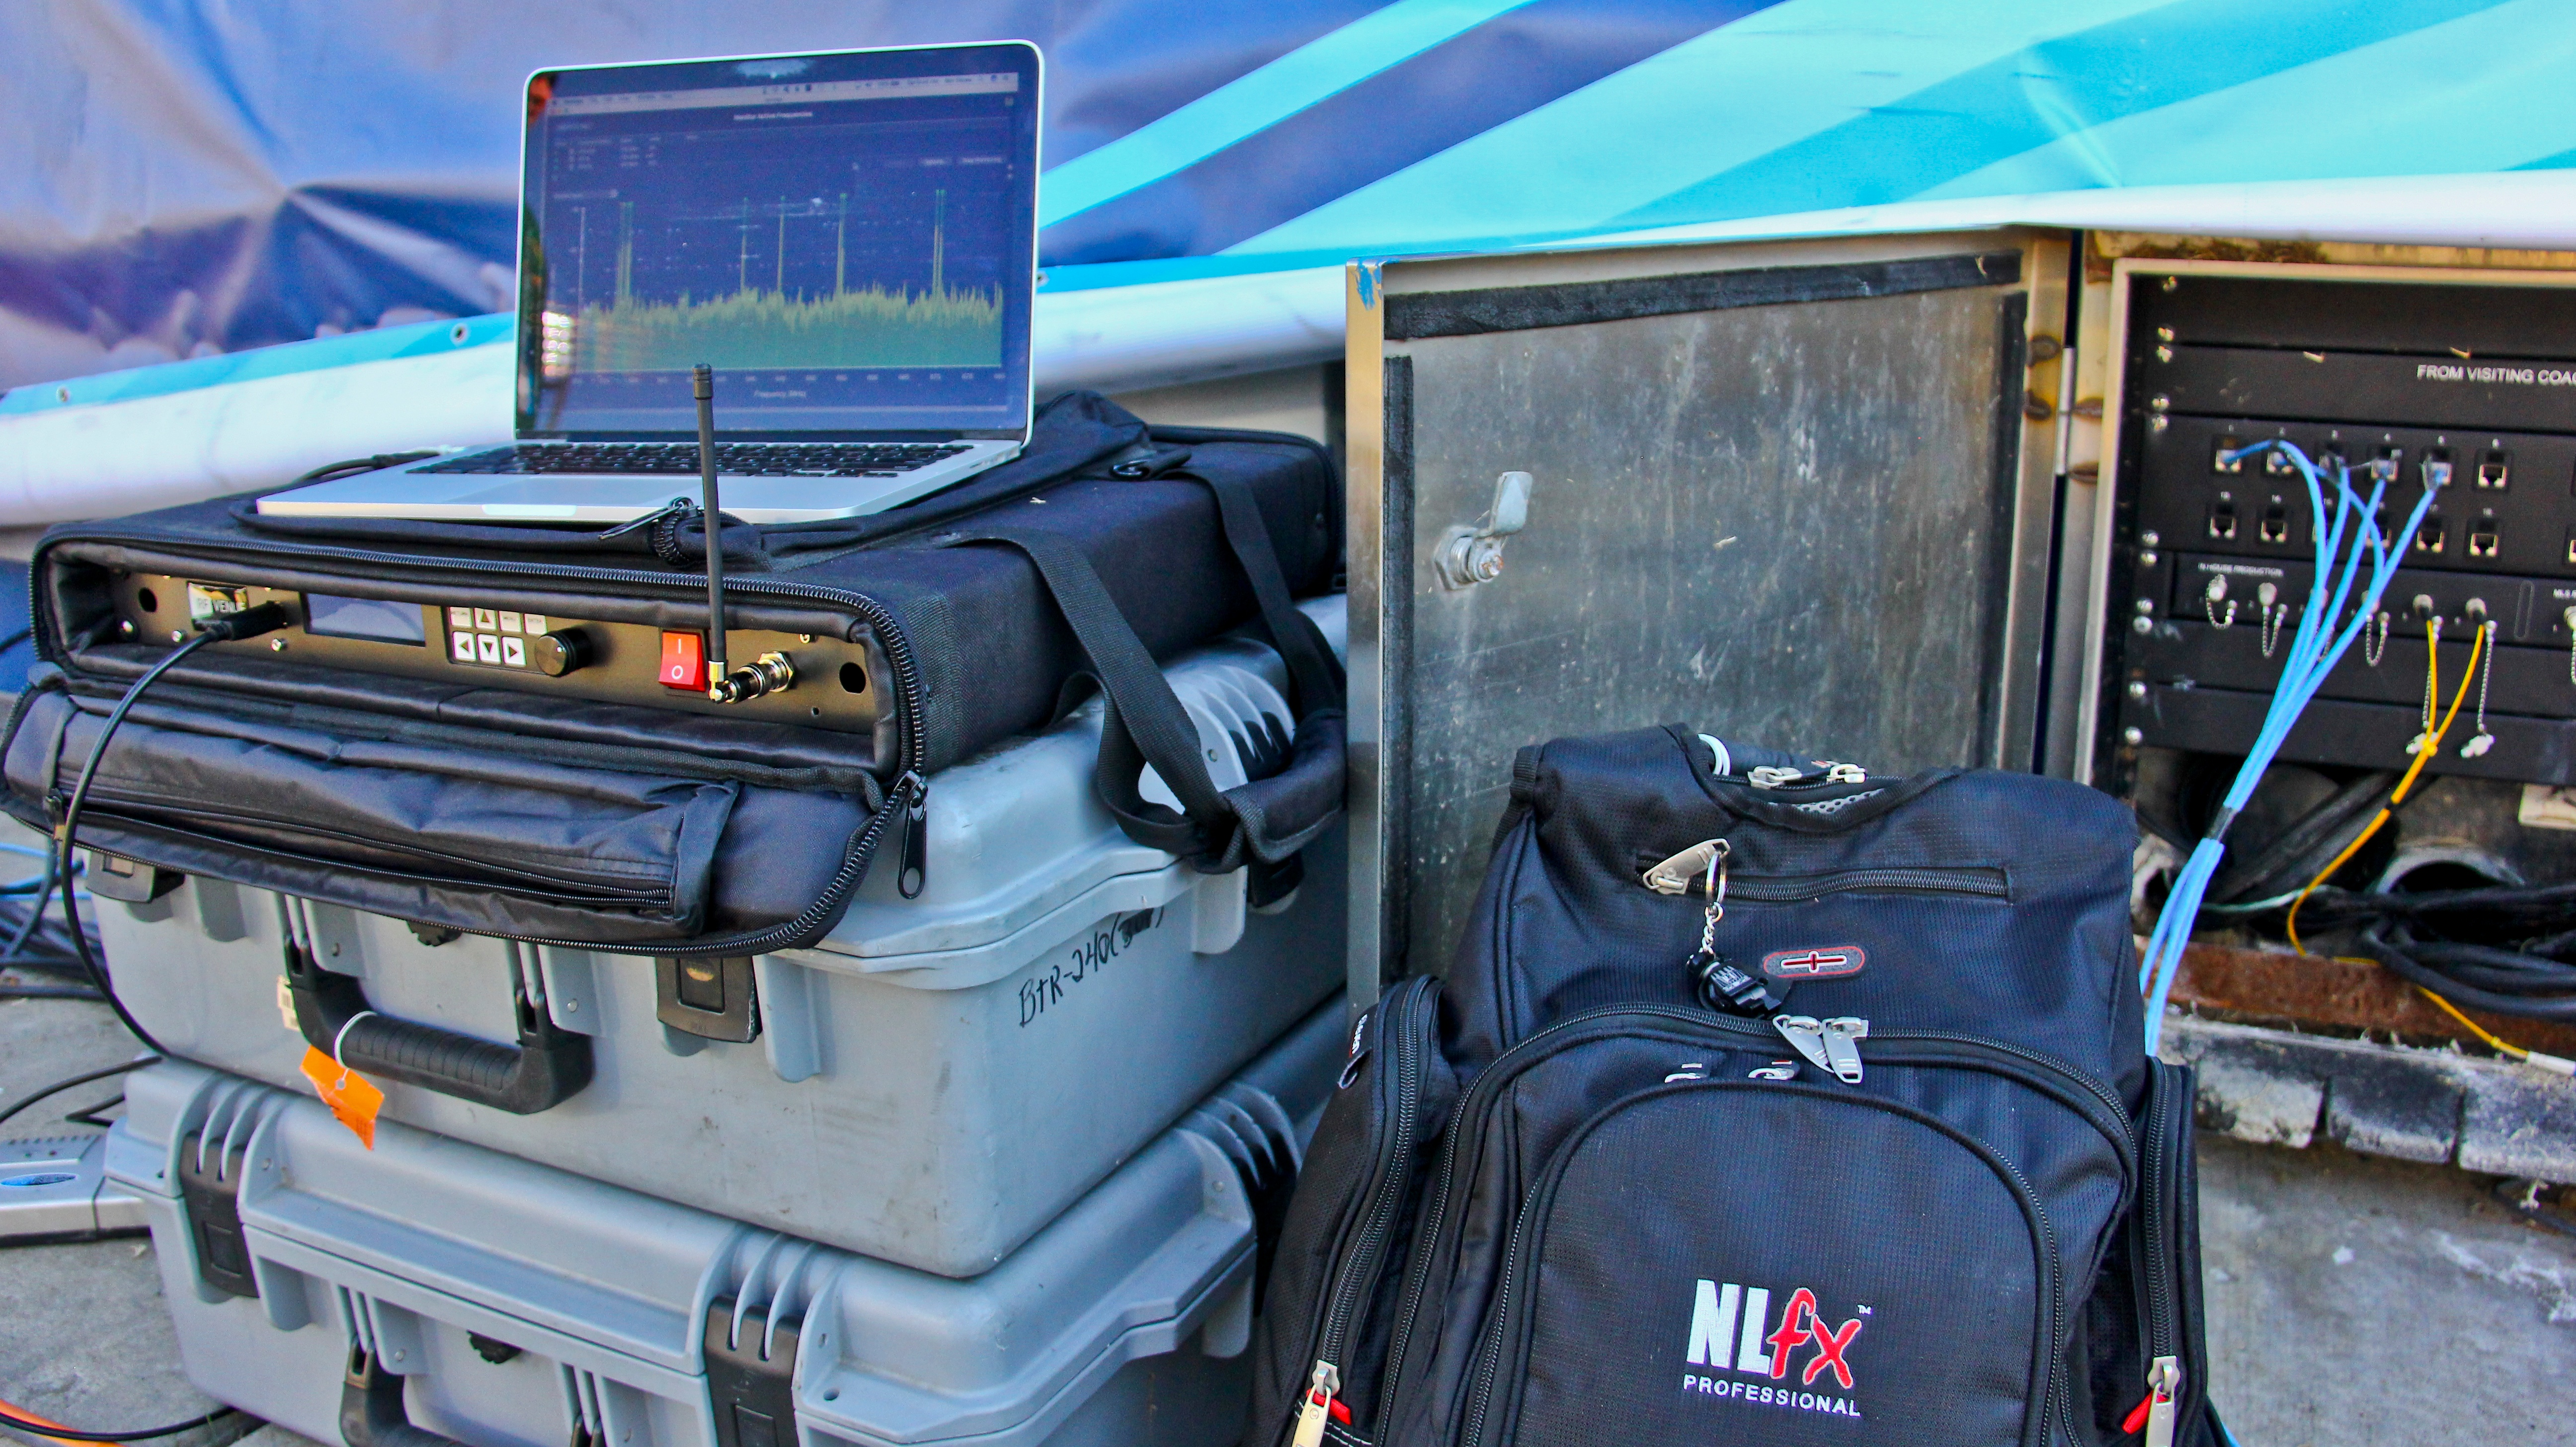 NLFX - Frequency Scanning